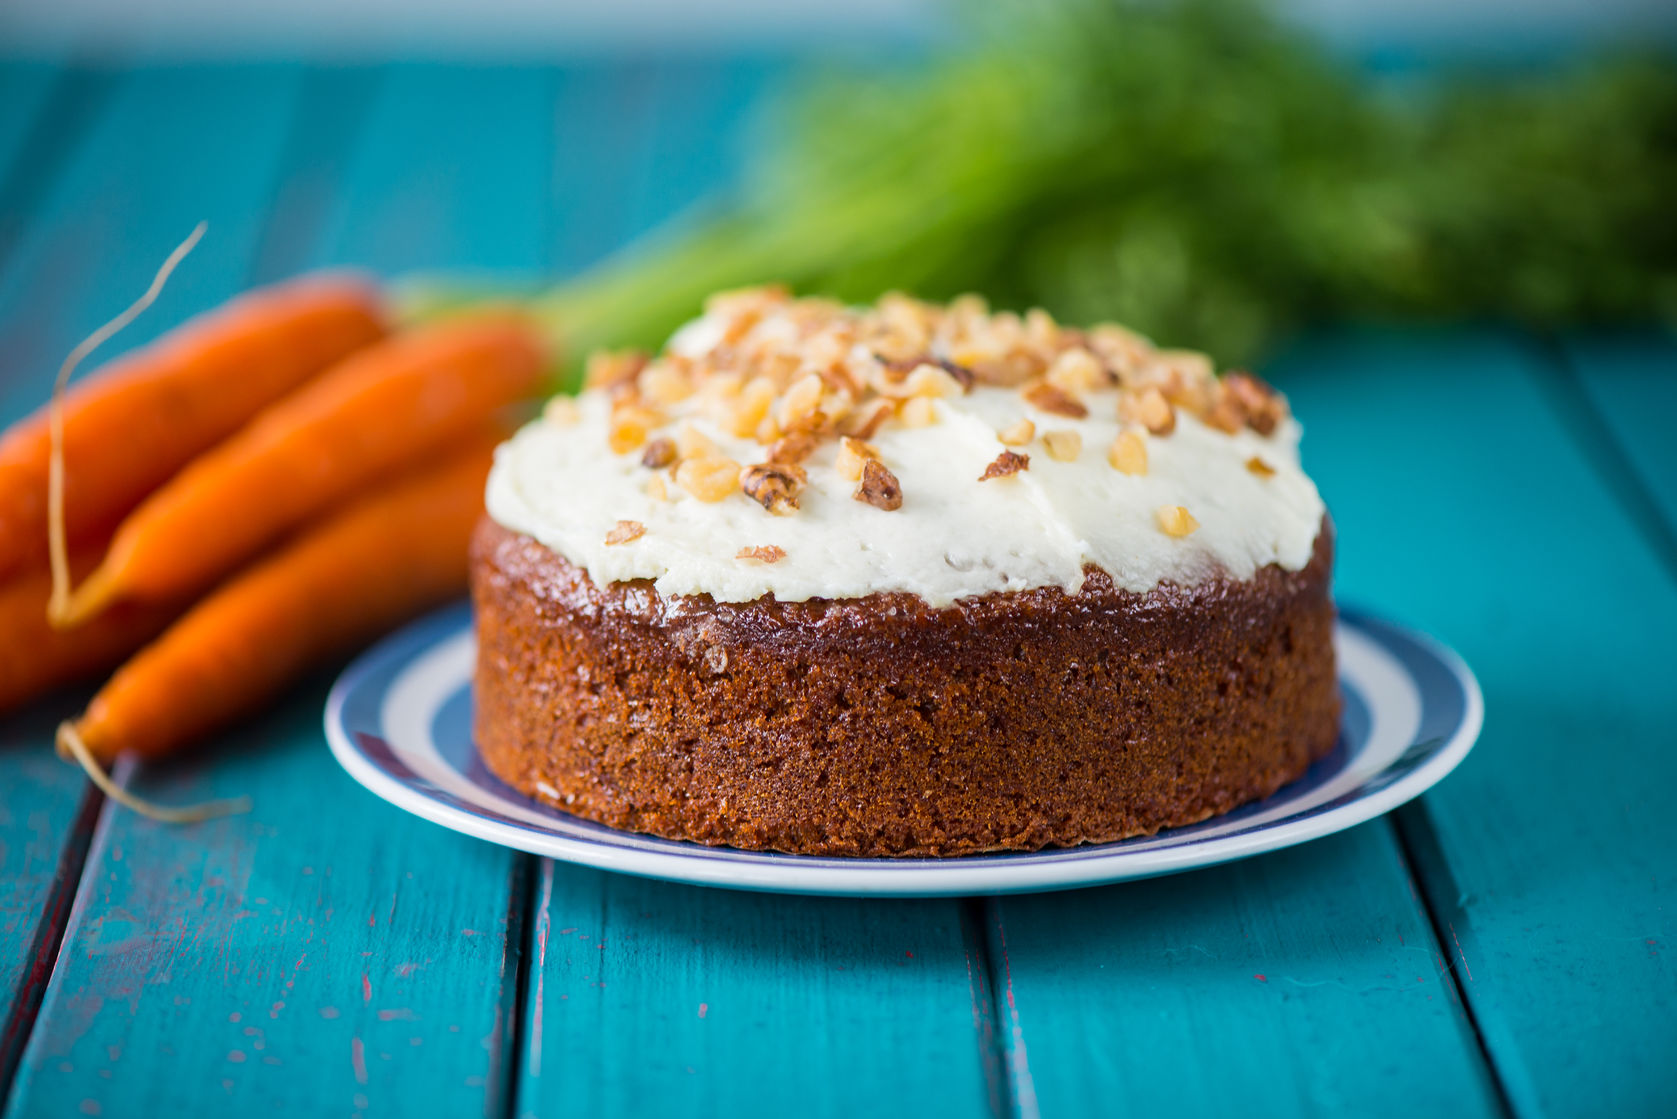 How To Do Carrot Cake